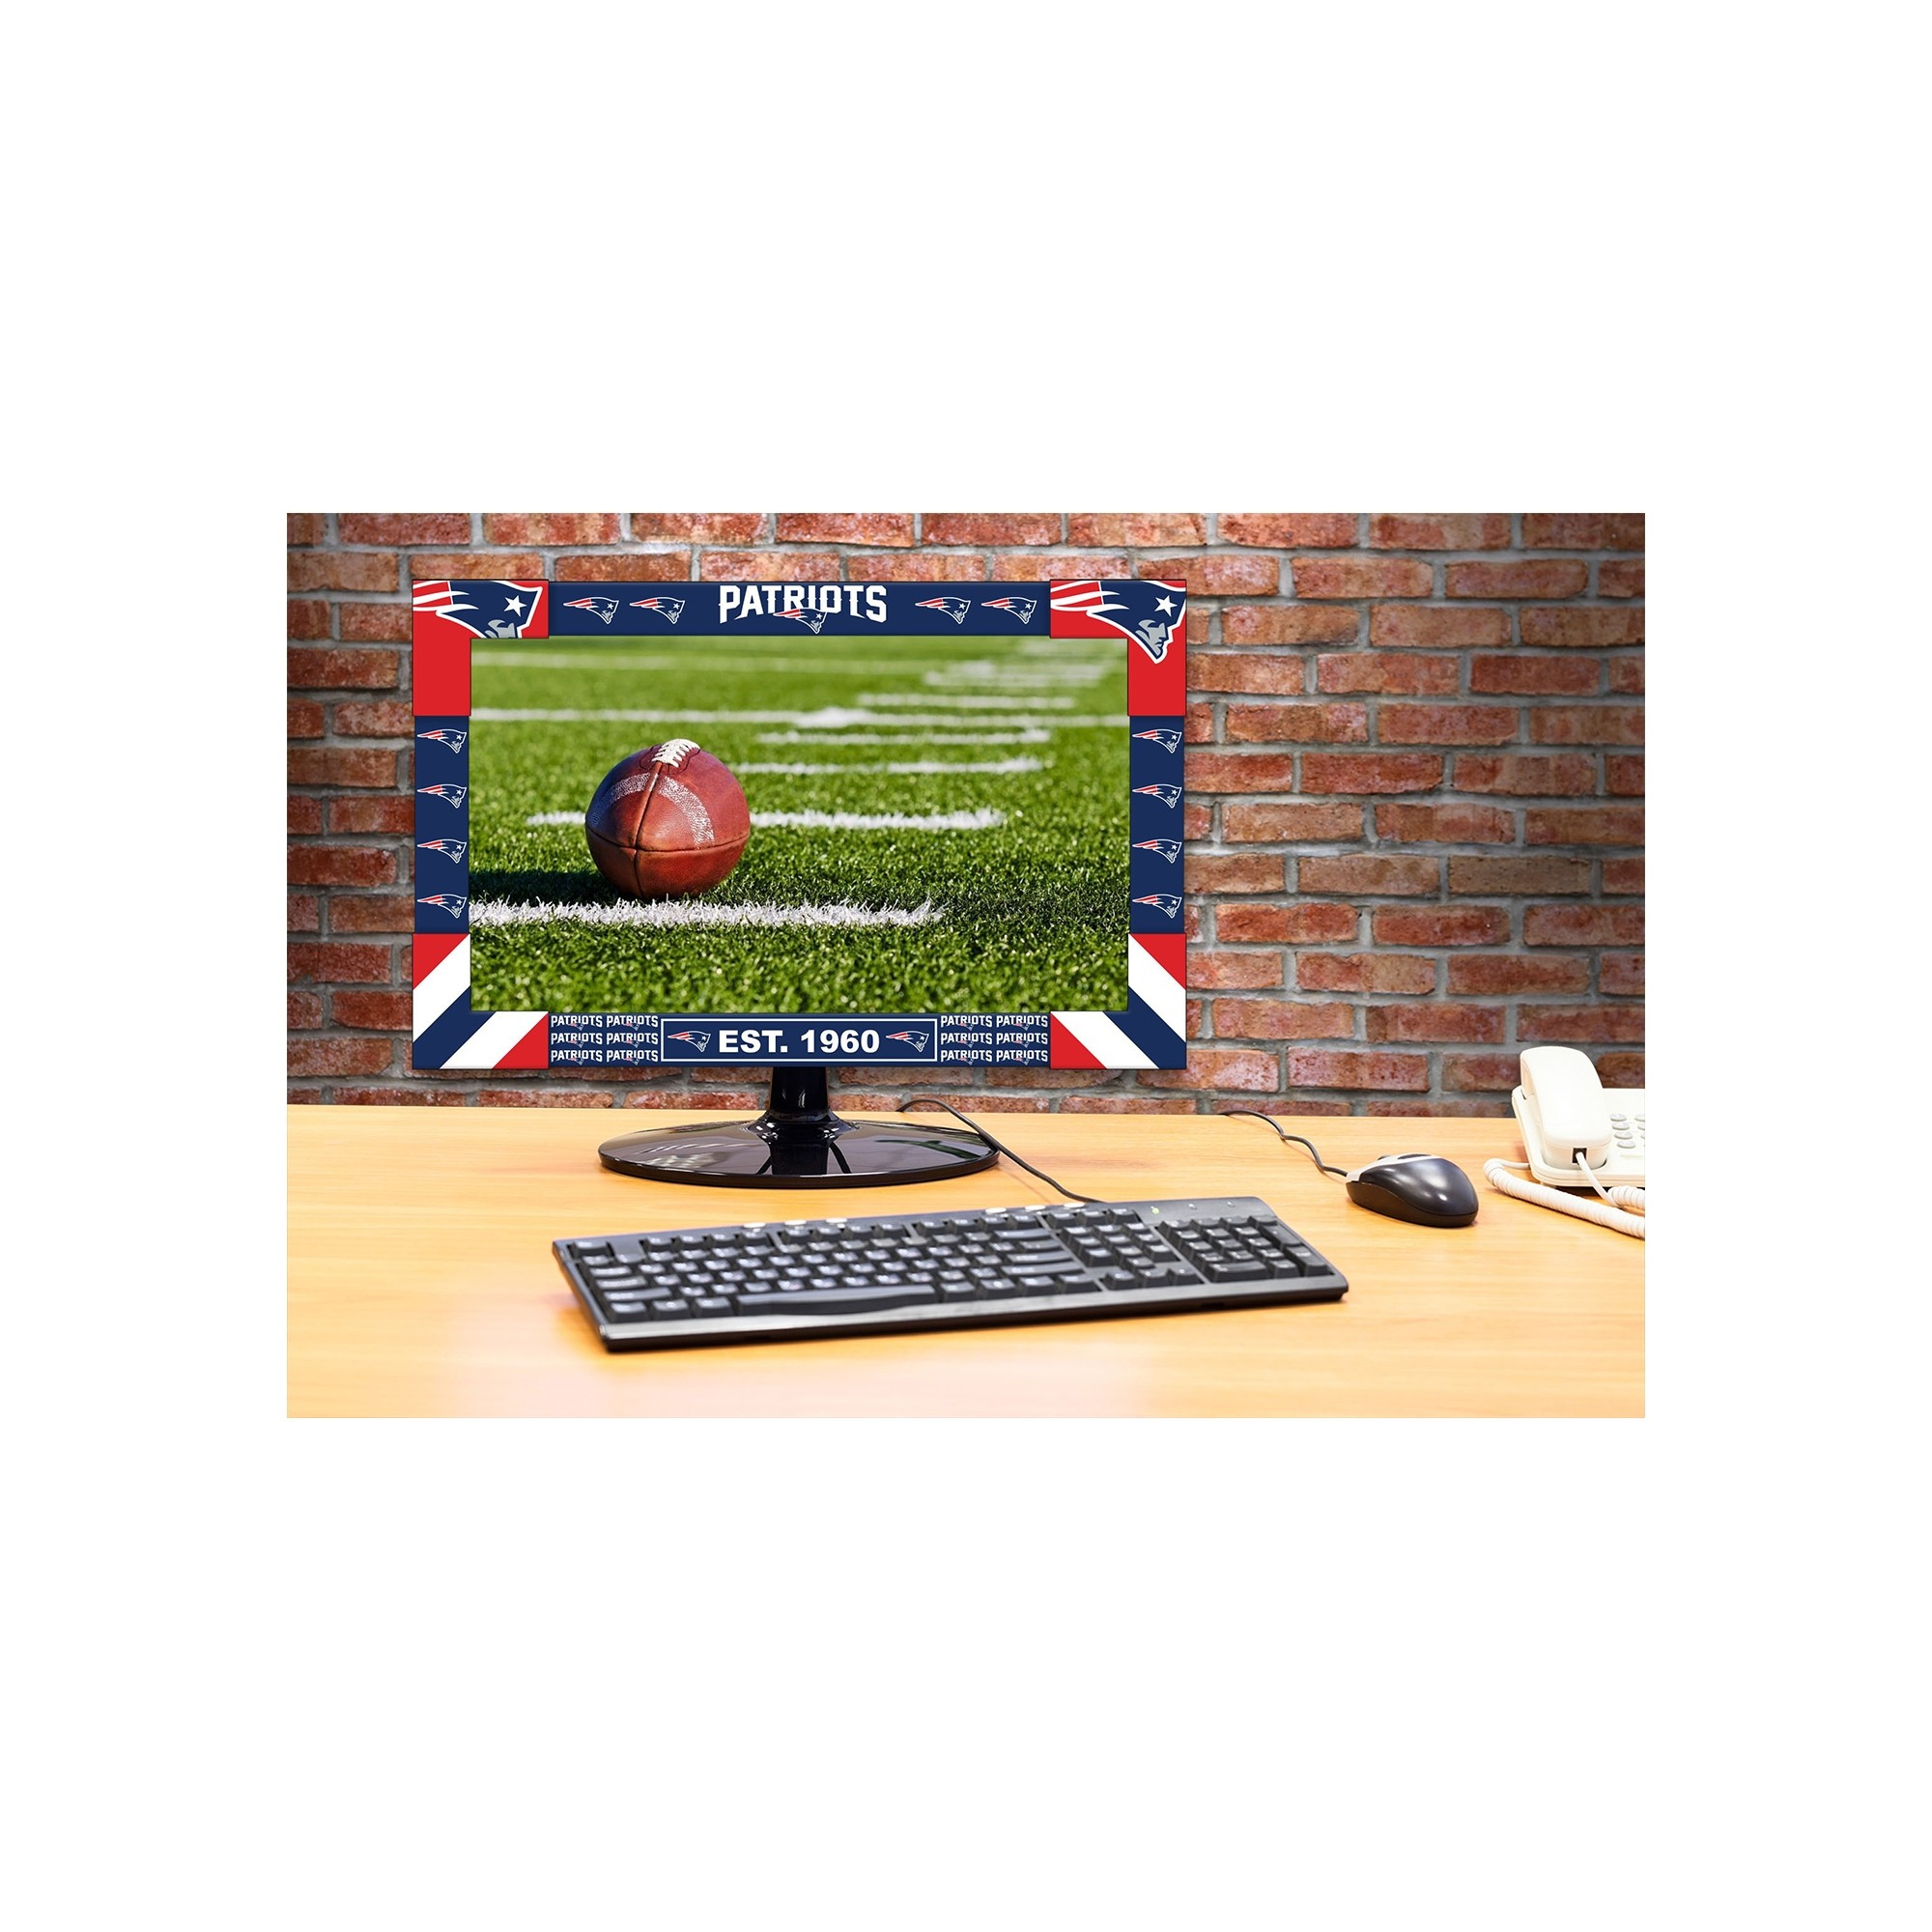 Nfl Football New England Patriots Toys Games Puzzles Games - 176-1011 - New England Patriots Big Game Monitor Frame 176-1011